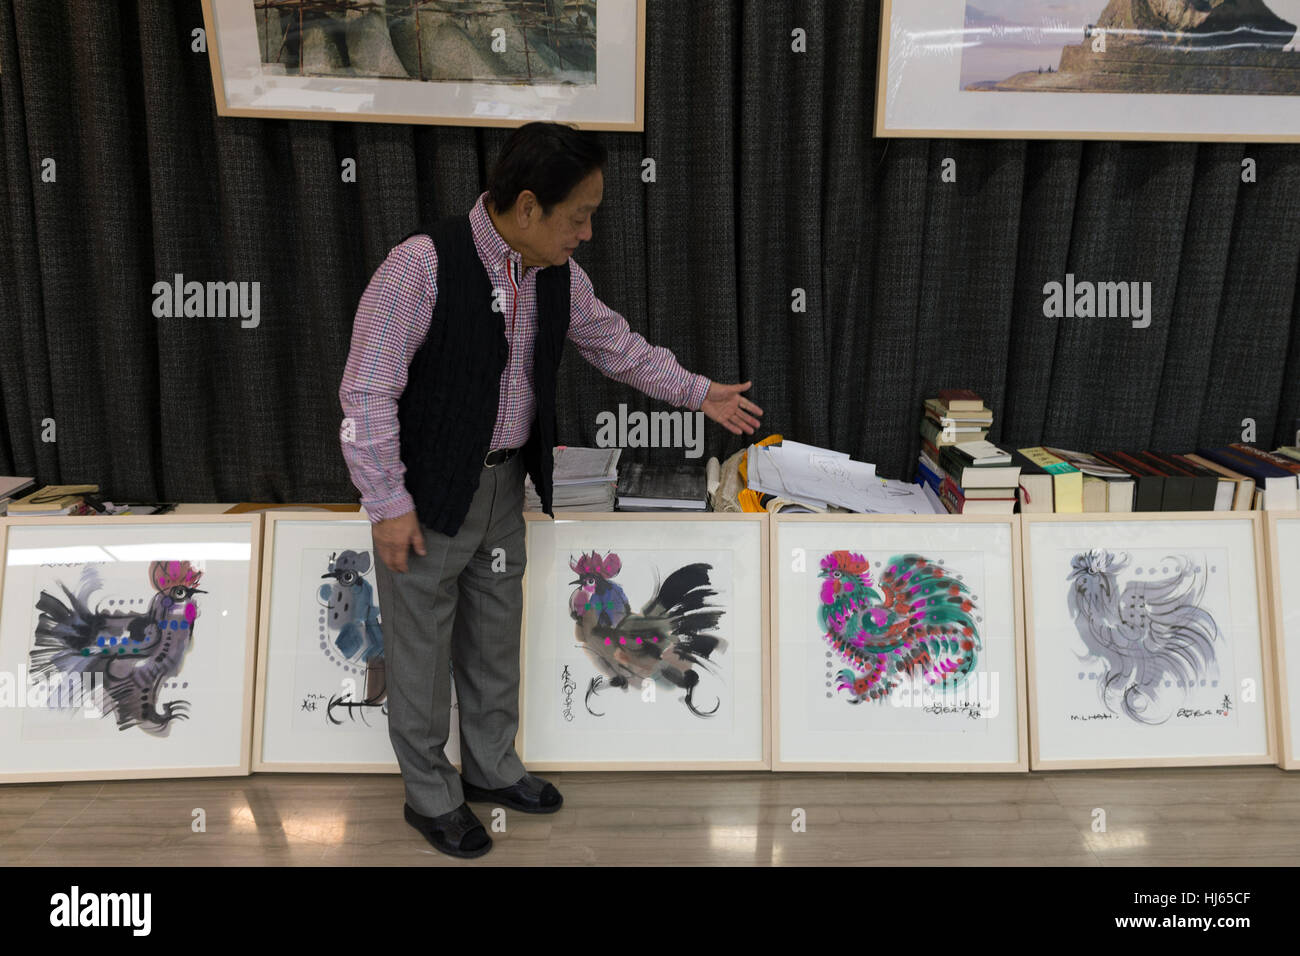 (170126) -- BEIJING, Jan. 26, 2017 (Xinhua) -- Chinese artist Han Meilin, 80, shows his paintings of roosters and - Stock Image